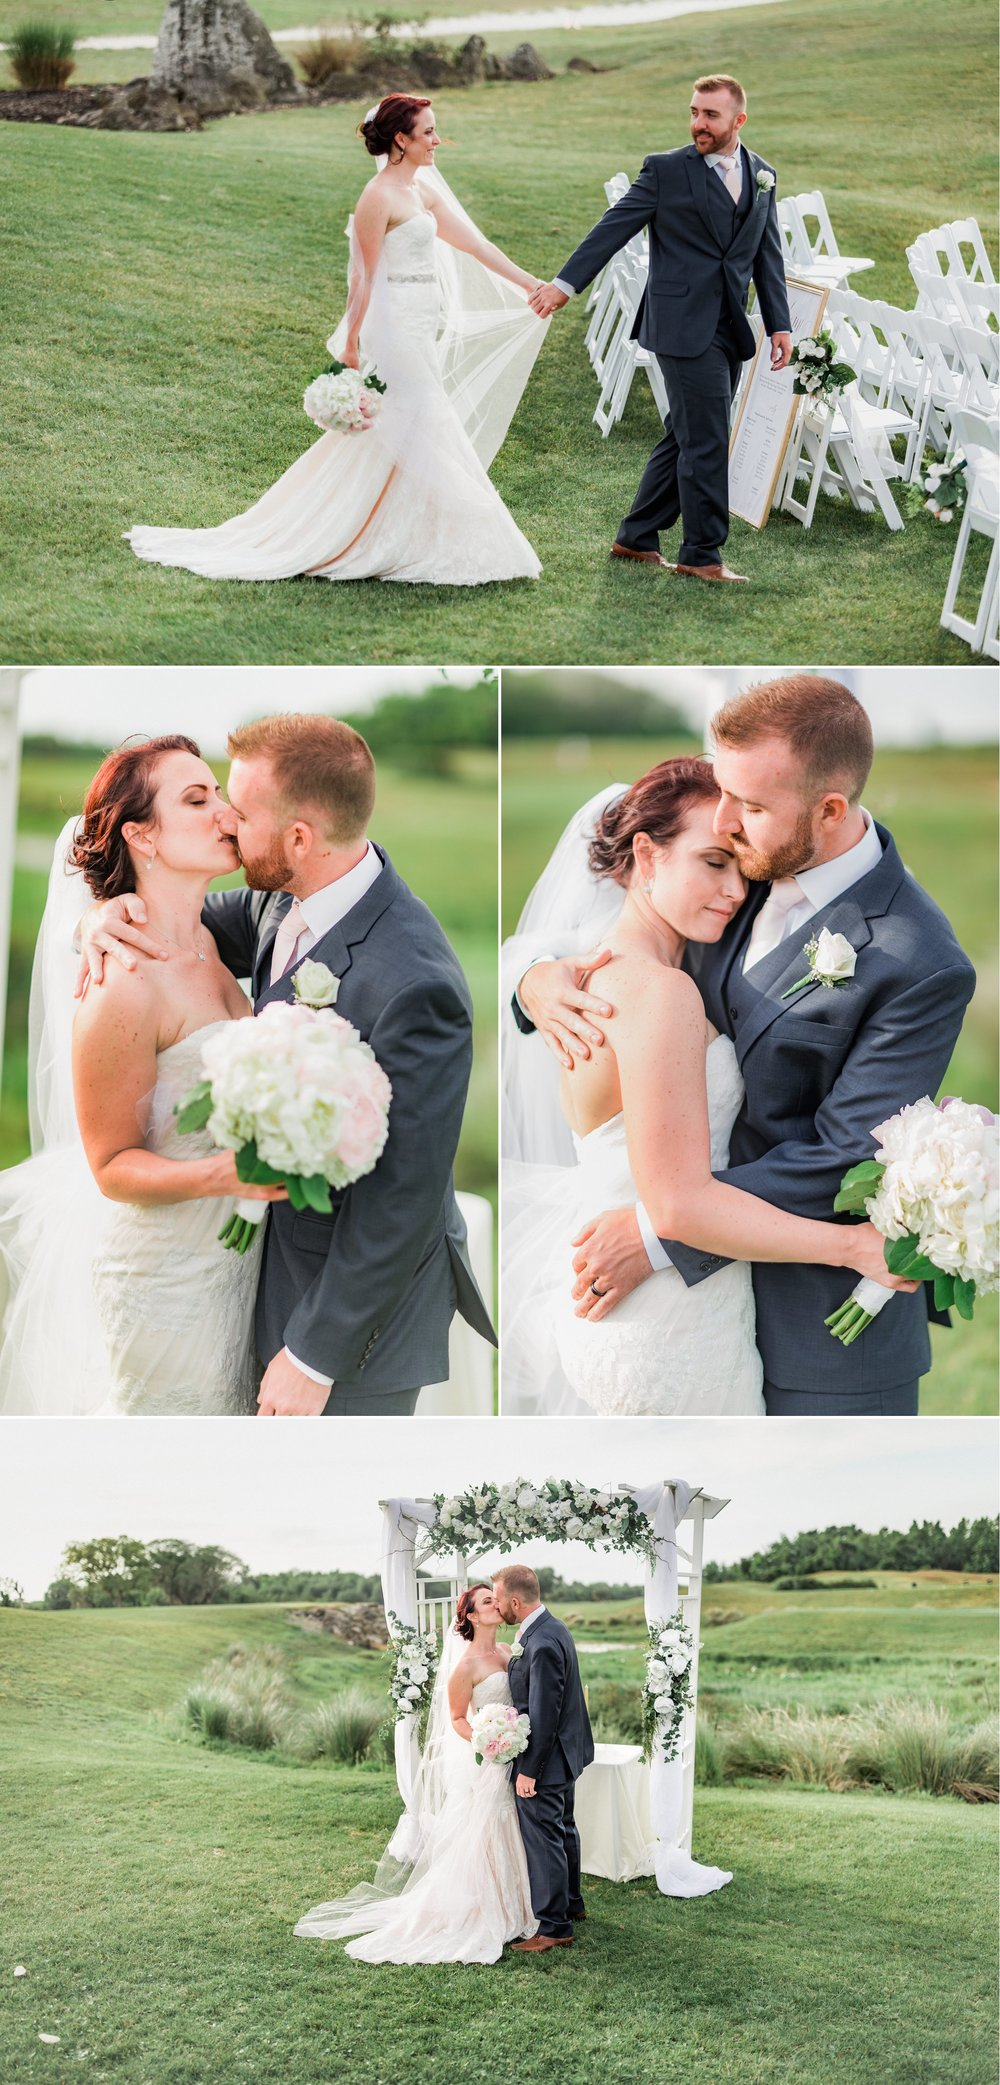 Romantic Pink Spring Wedding - Katie + Joe by Orlando Wedding Photographer Shaina DeCiryan 73.jpg